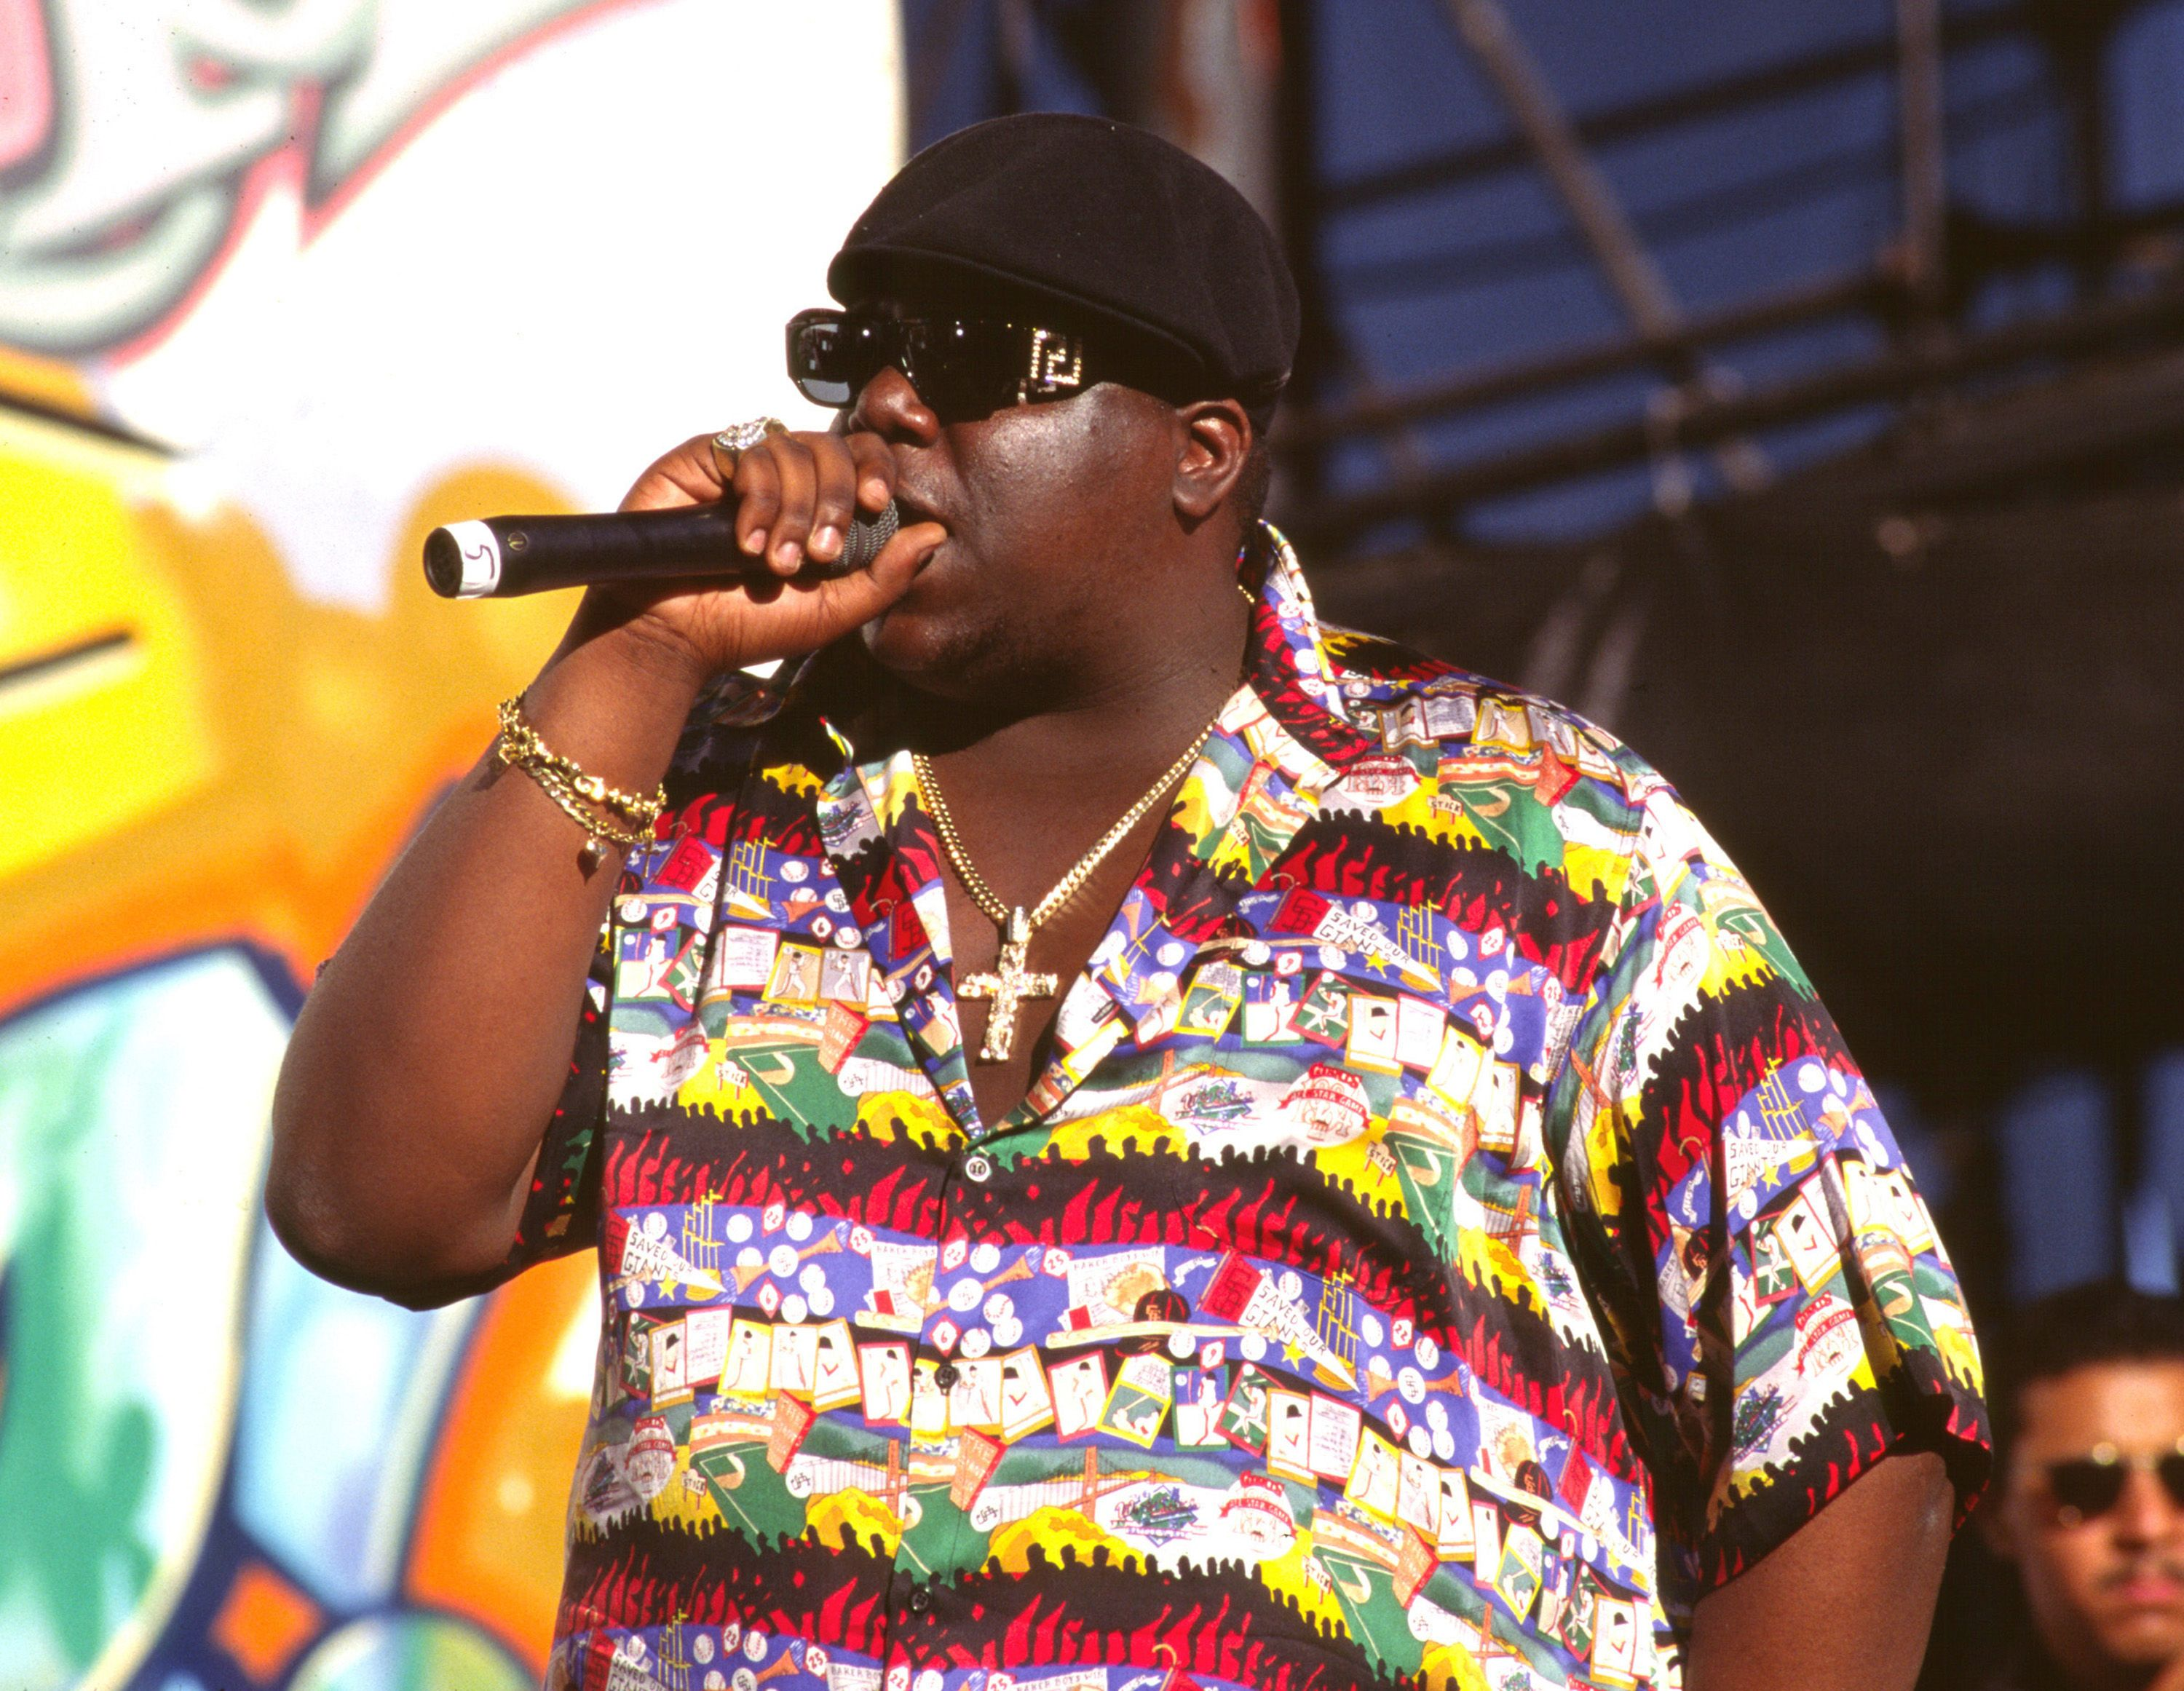 Notorious B.I.G. performing on stage, circa 1995. | Source: Getty Images